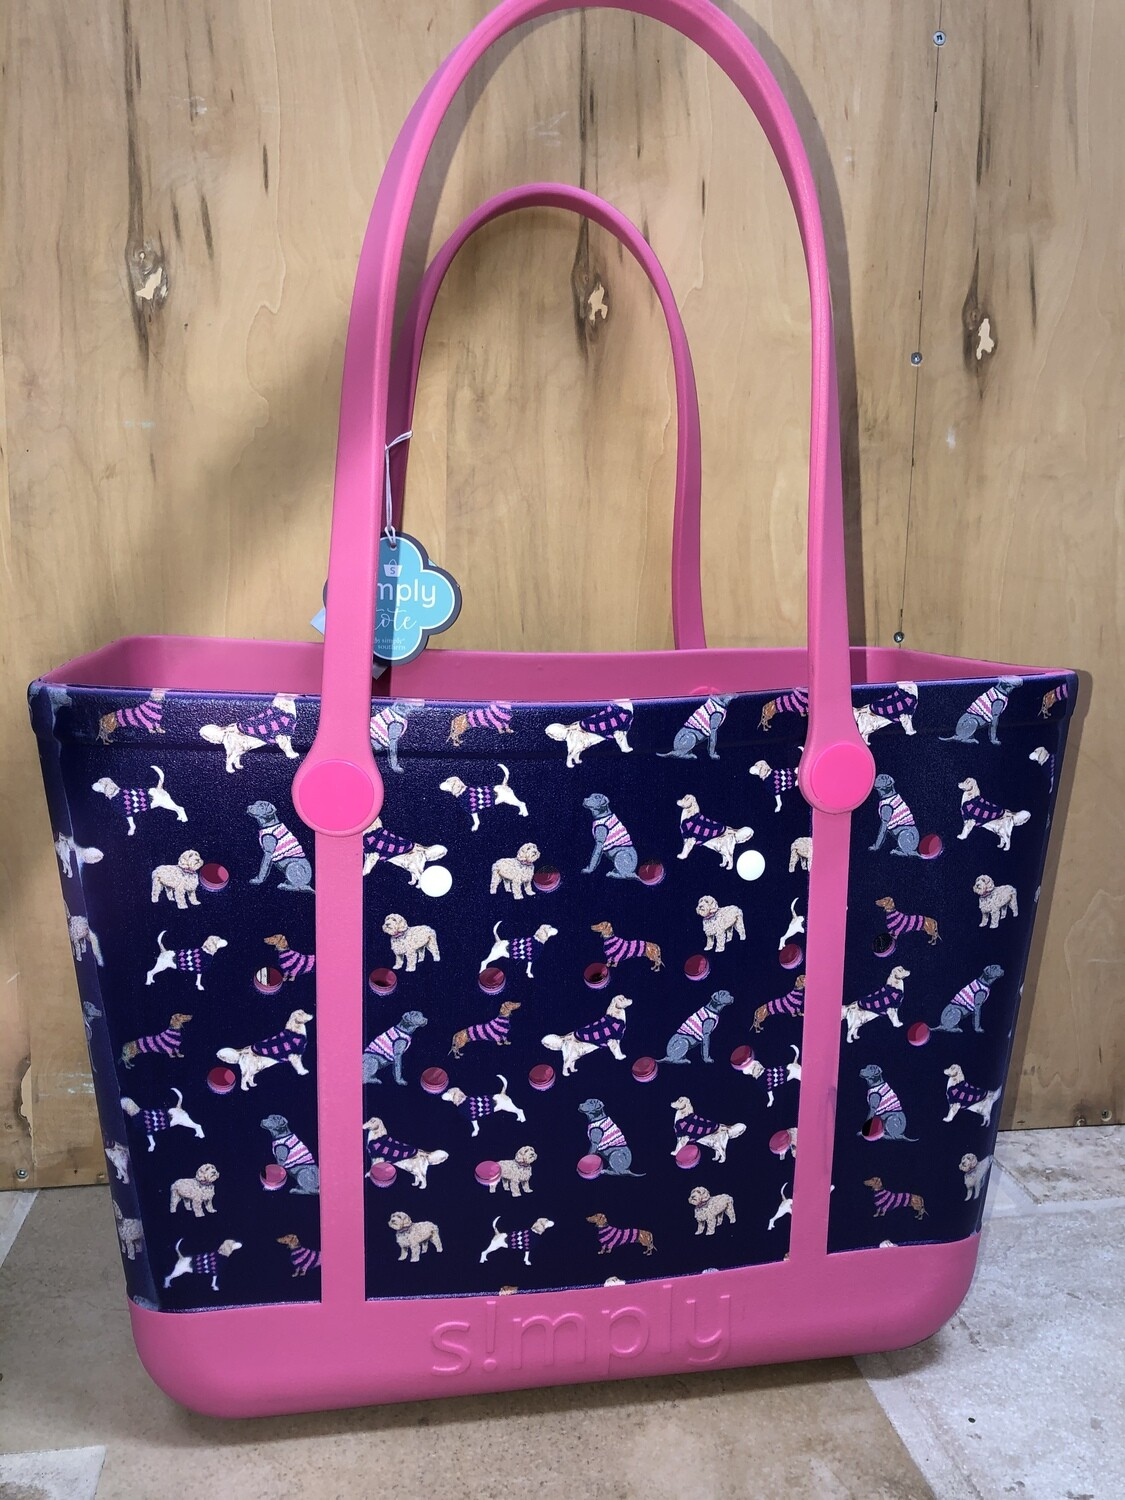 20 Lg Simply South Totes (Pattern)